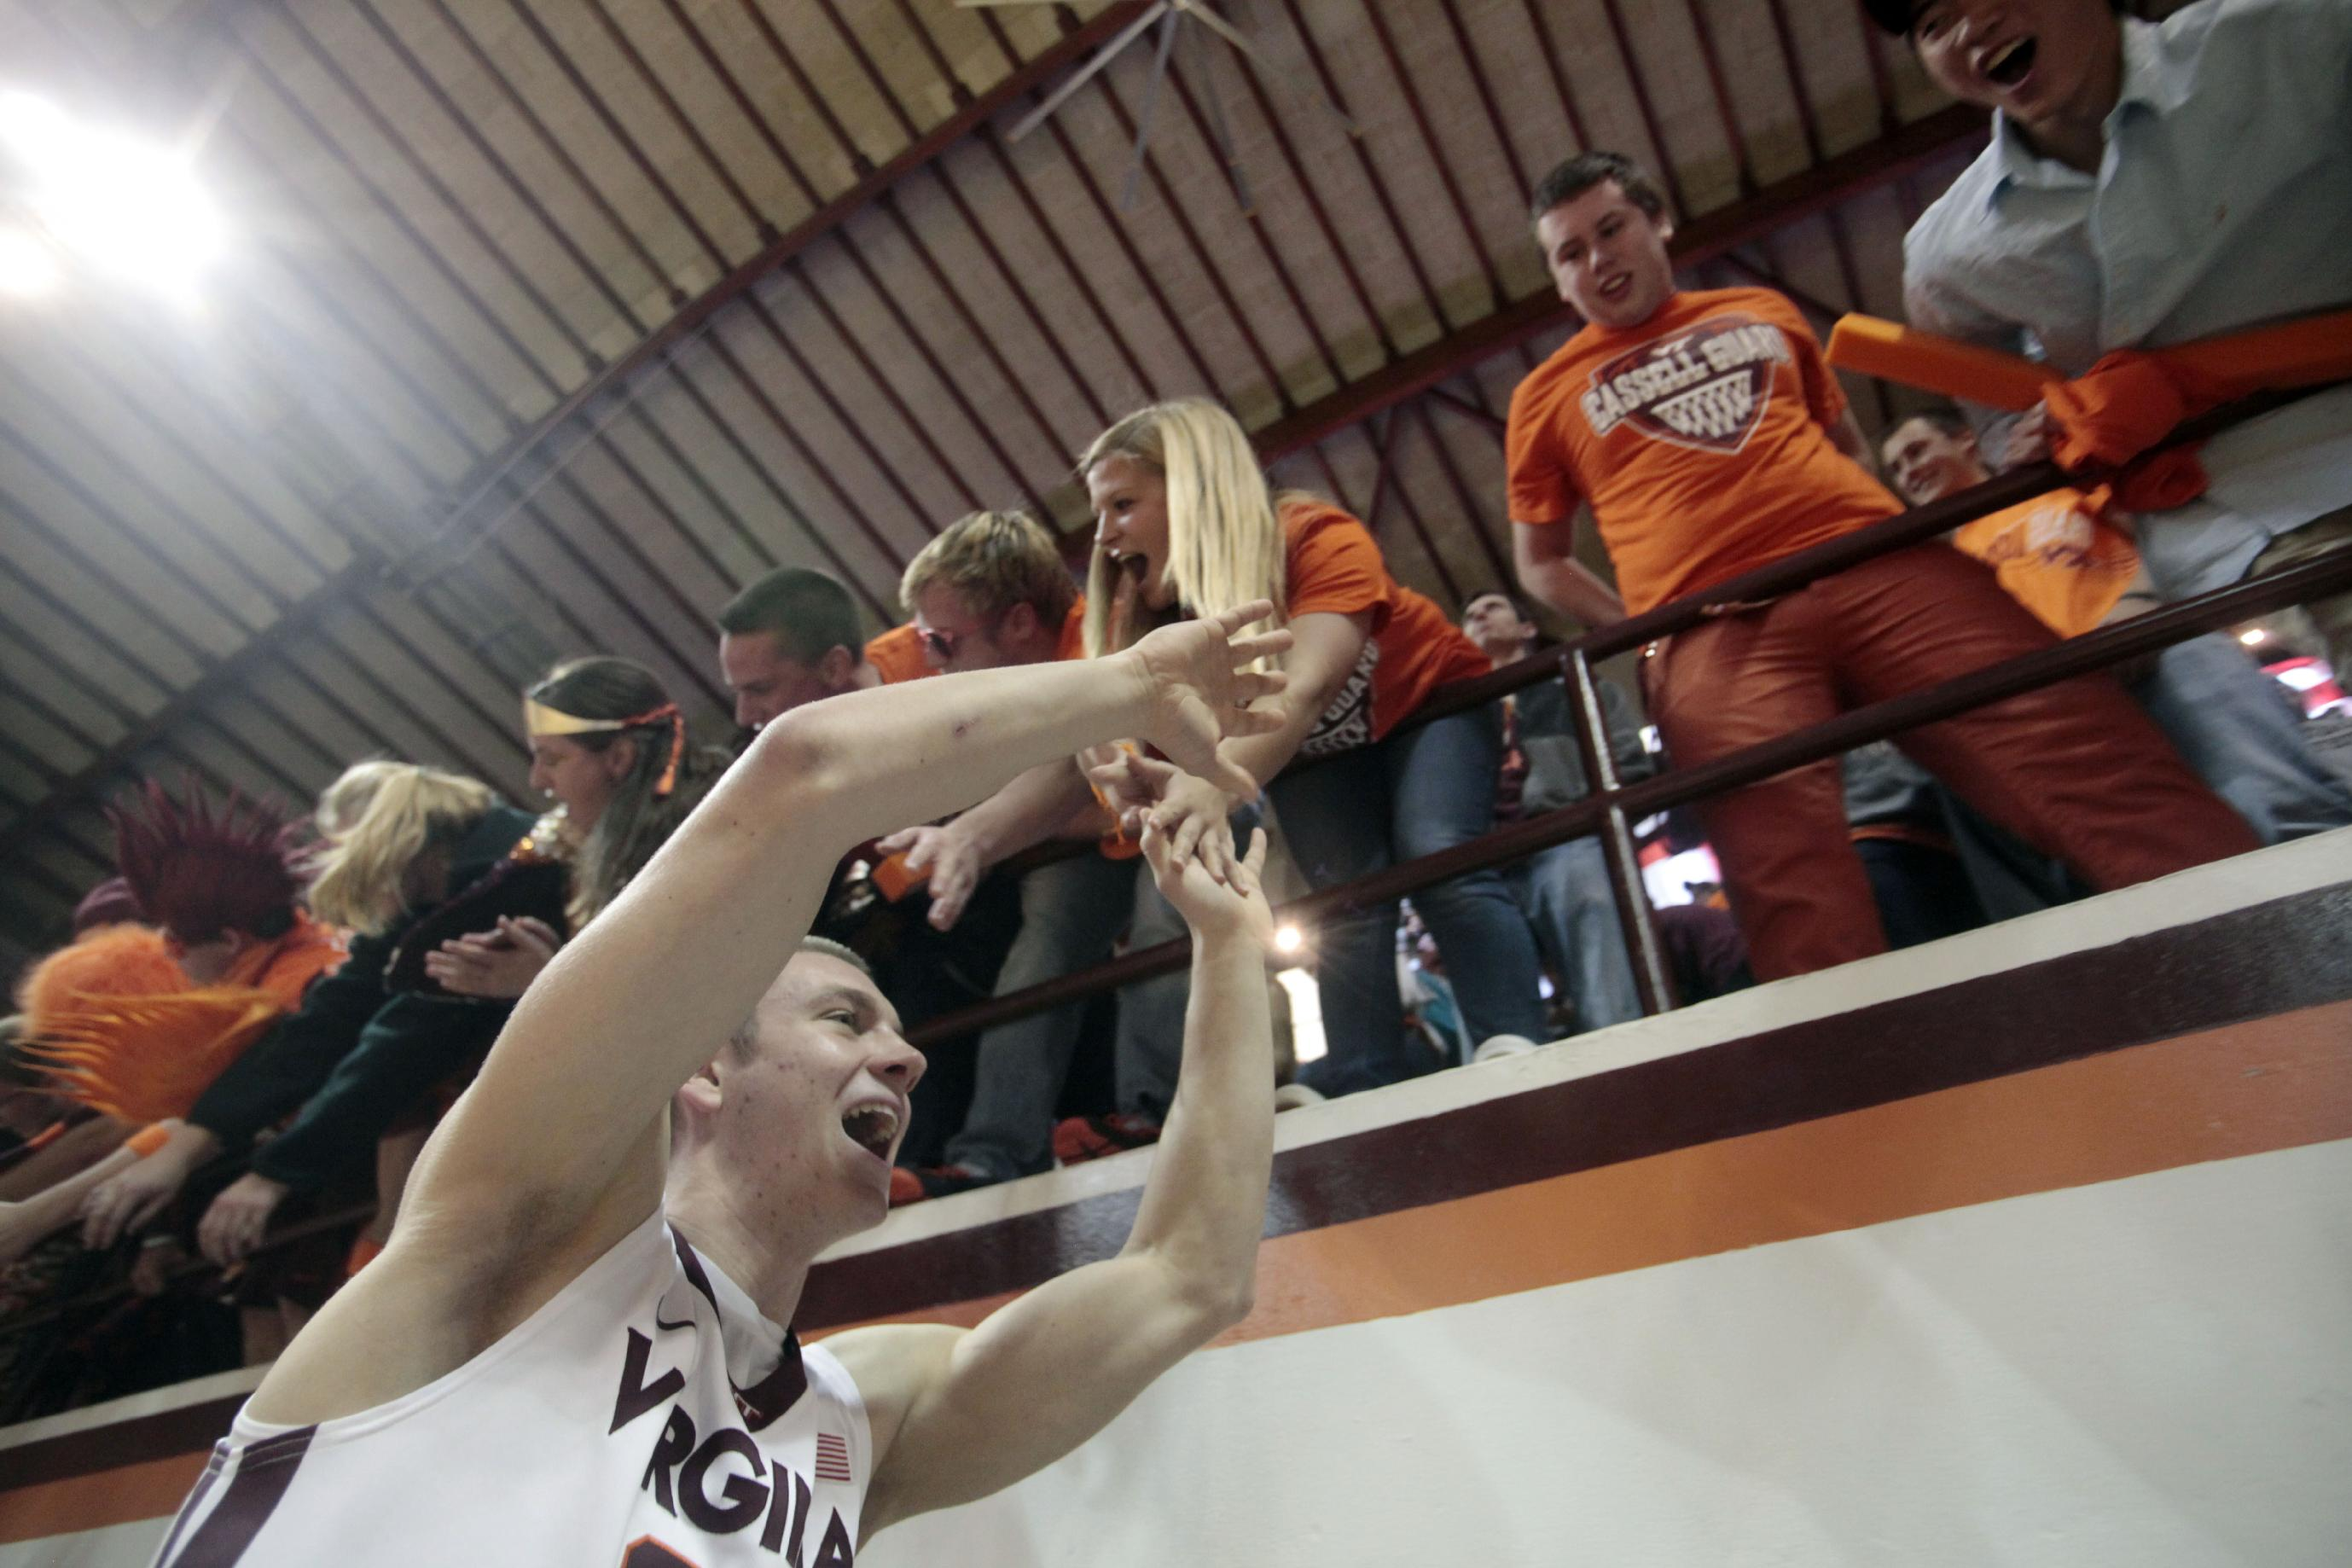 Virginia Tech guard Will Johnston (25) celebrates with fans after defeating West Virginia 87-82 in an NCAA college basketball game in Blacksburg, Va., Tuesday, Nov. 12, 2013